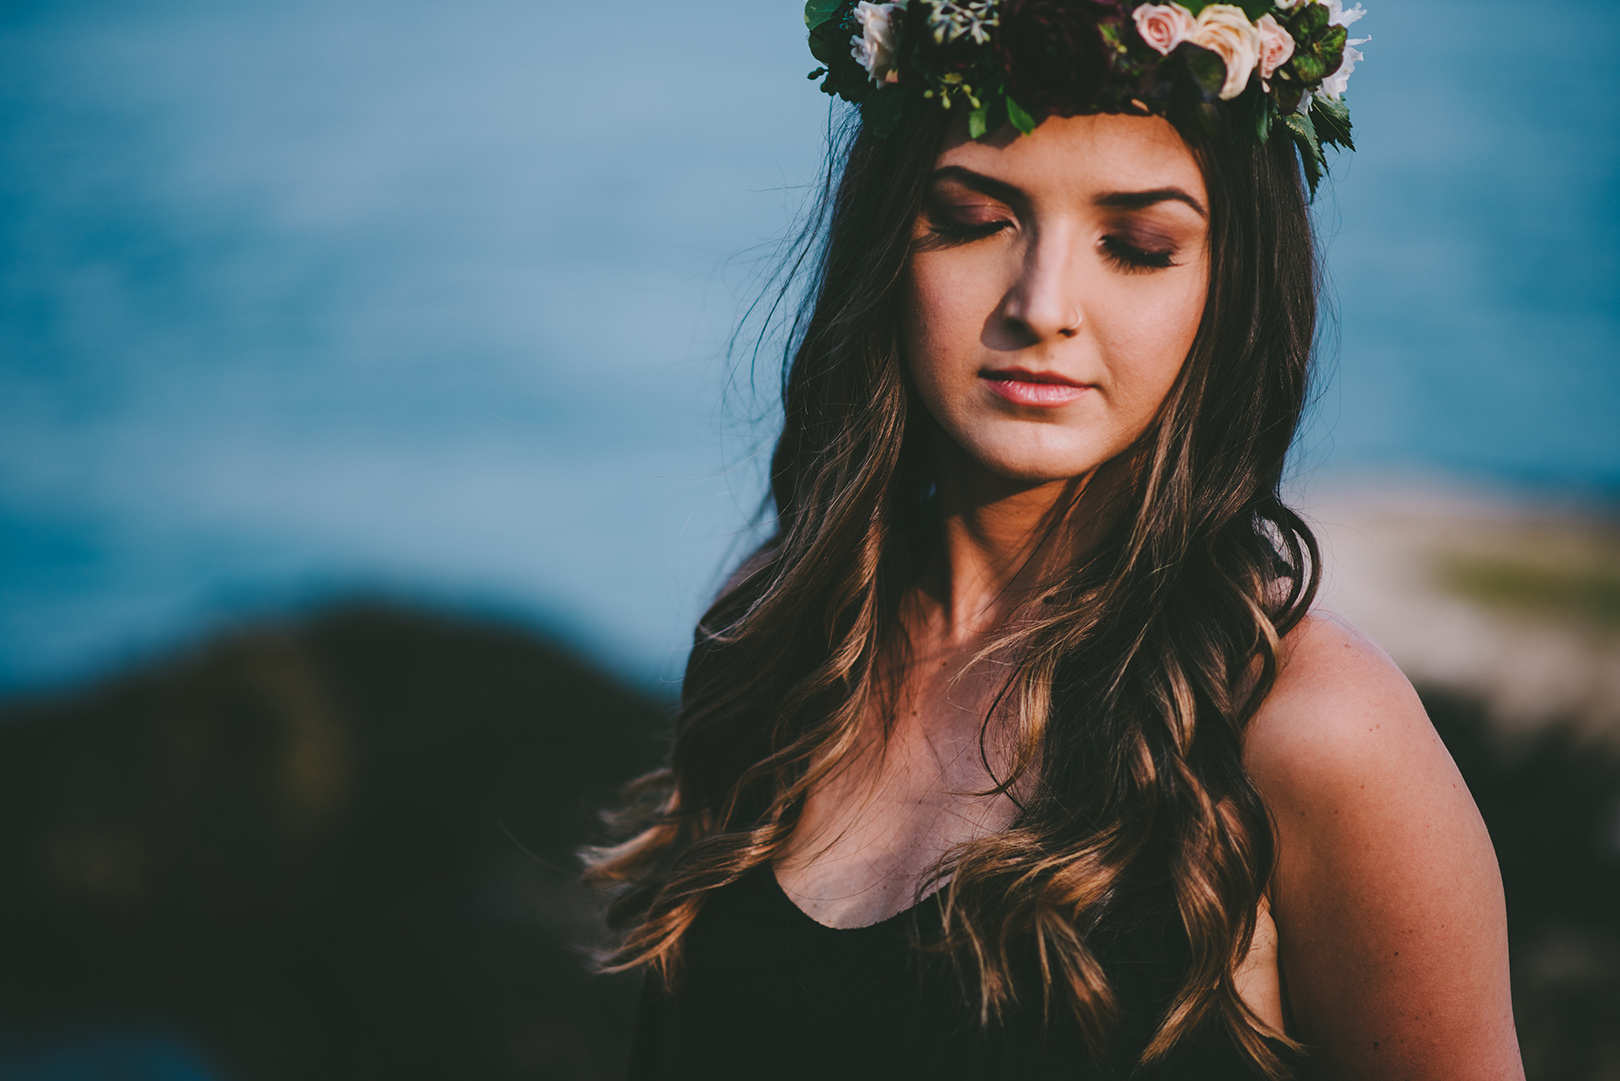 Flower crown Vancouver BC